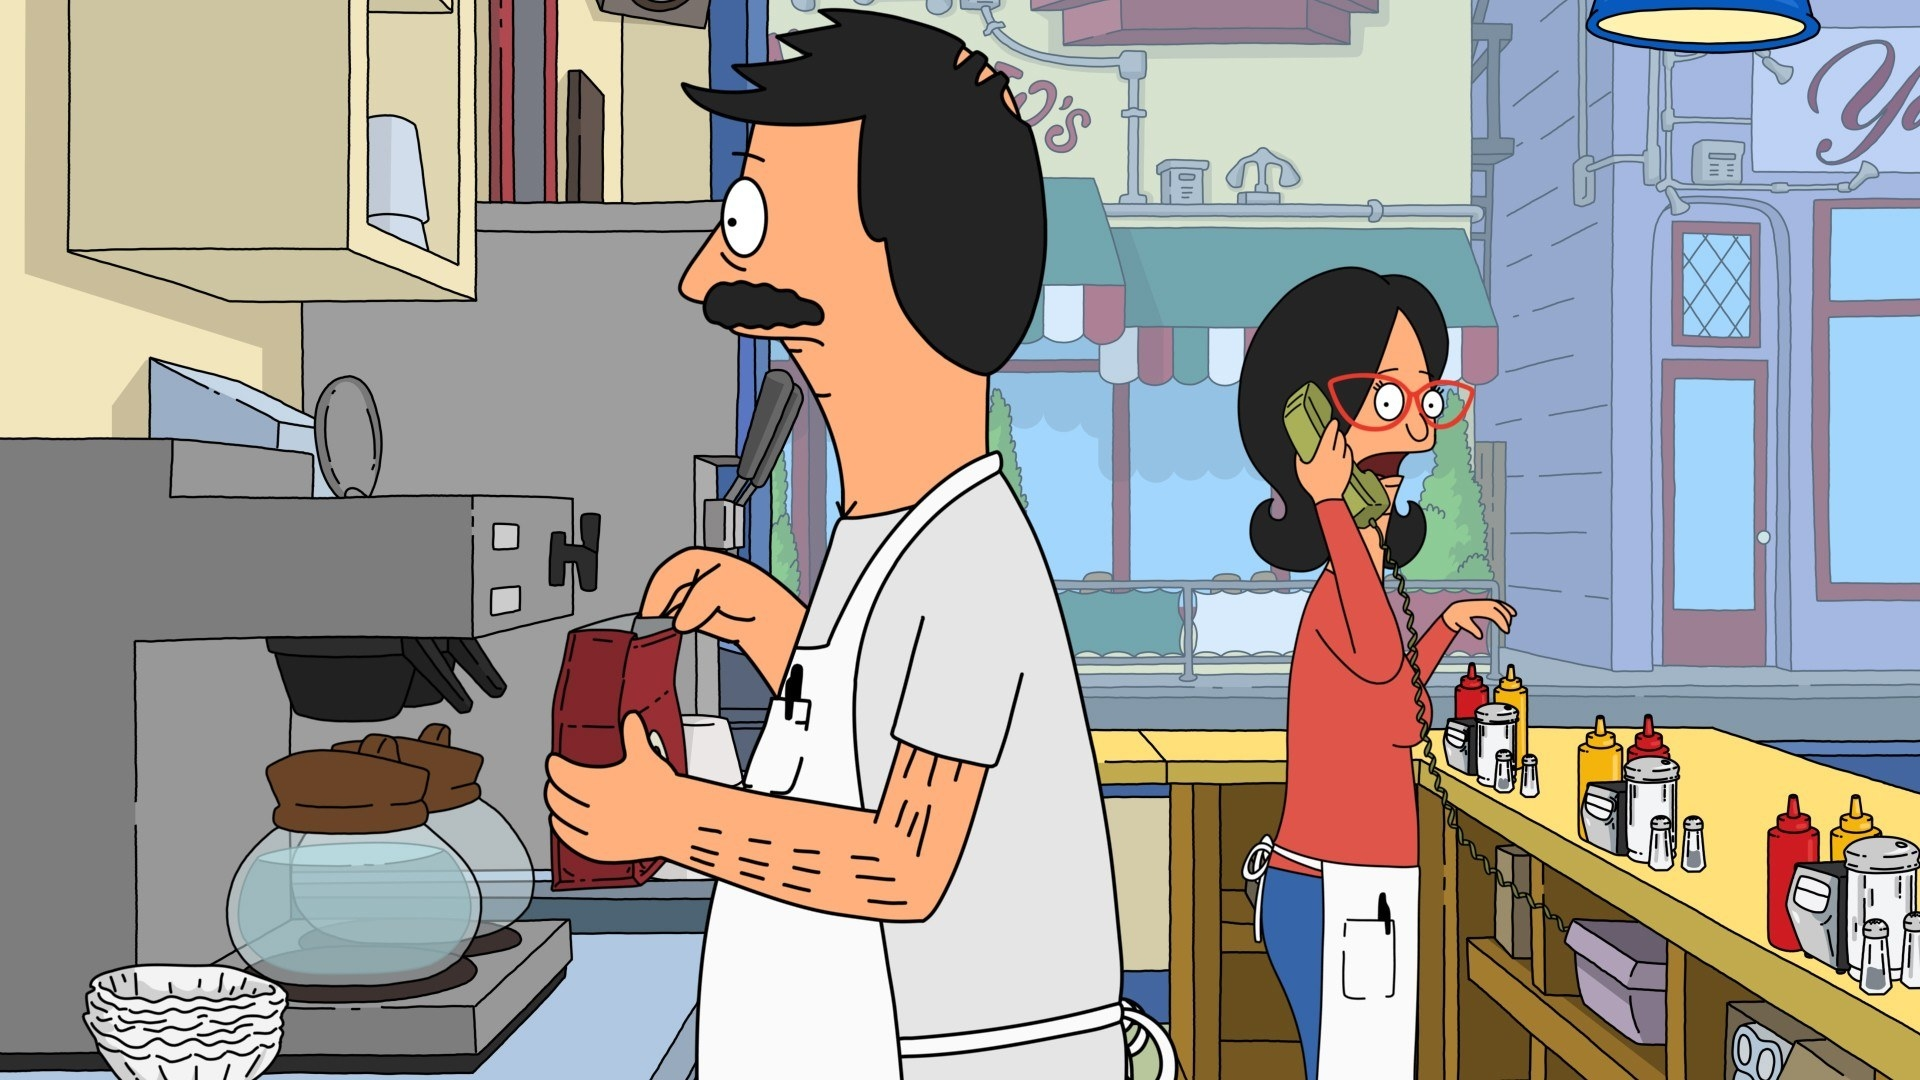 Bob and Linda Belcher stand behind the counter in their diner